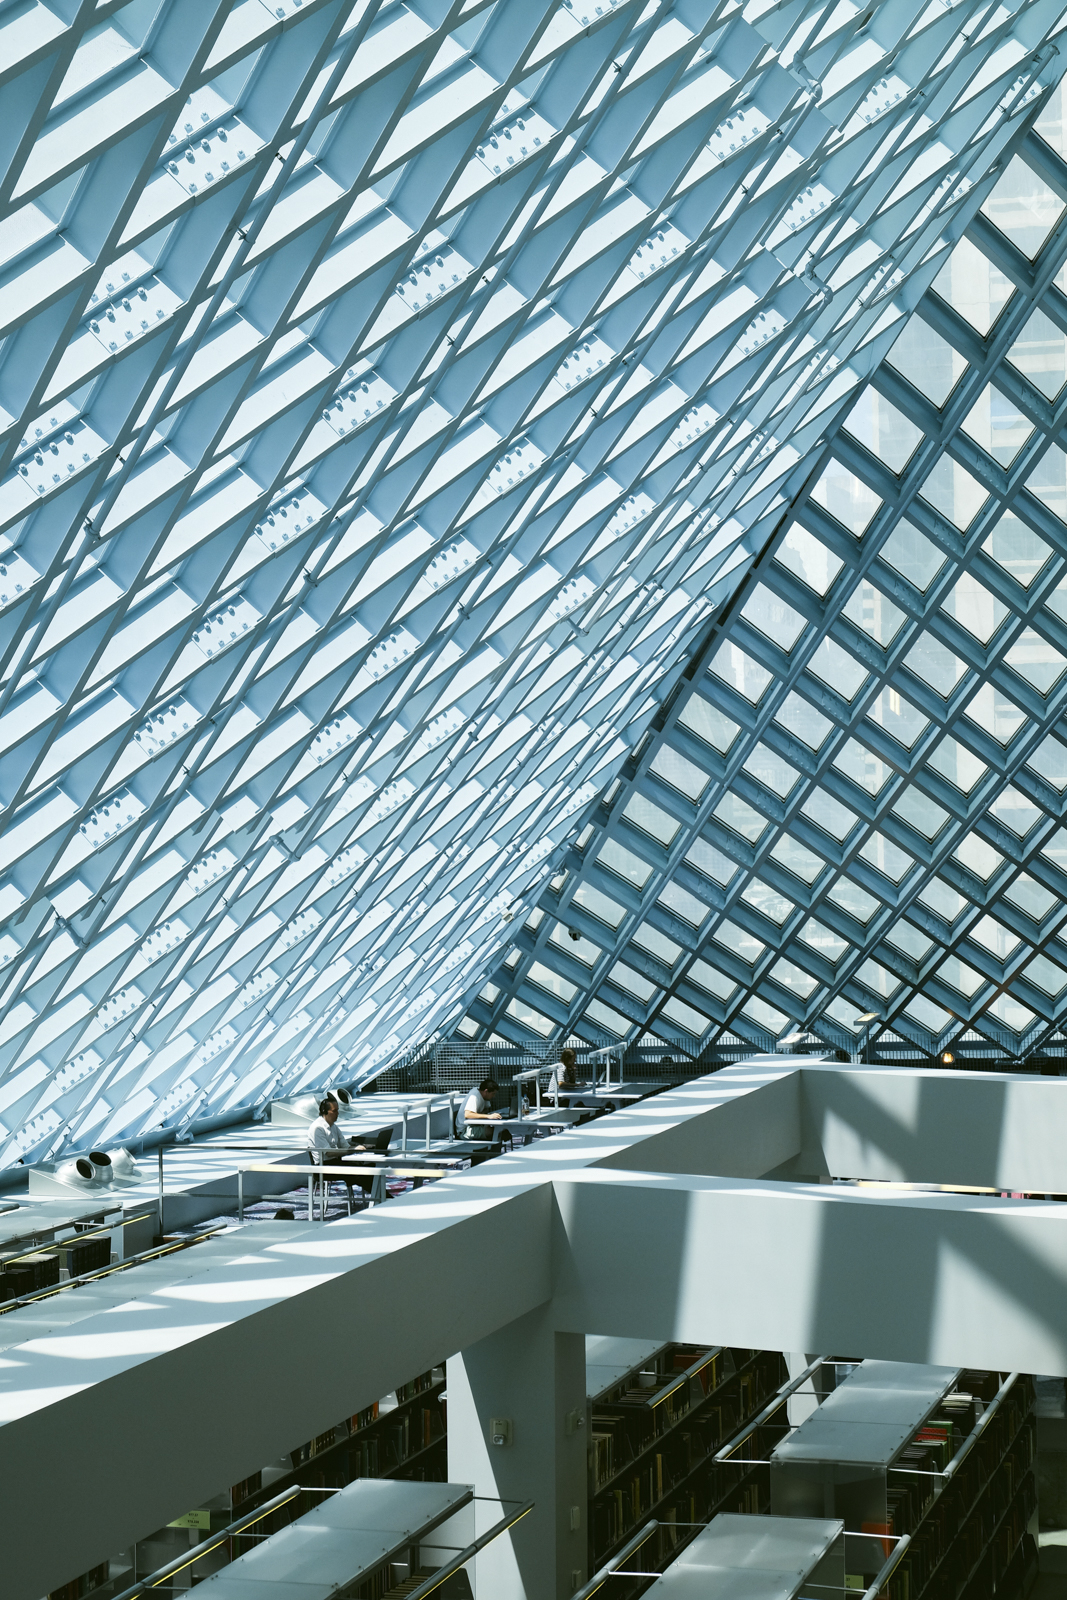 Seattle public library  by photographer Dylan Priest